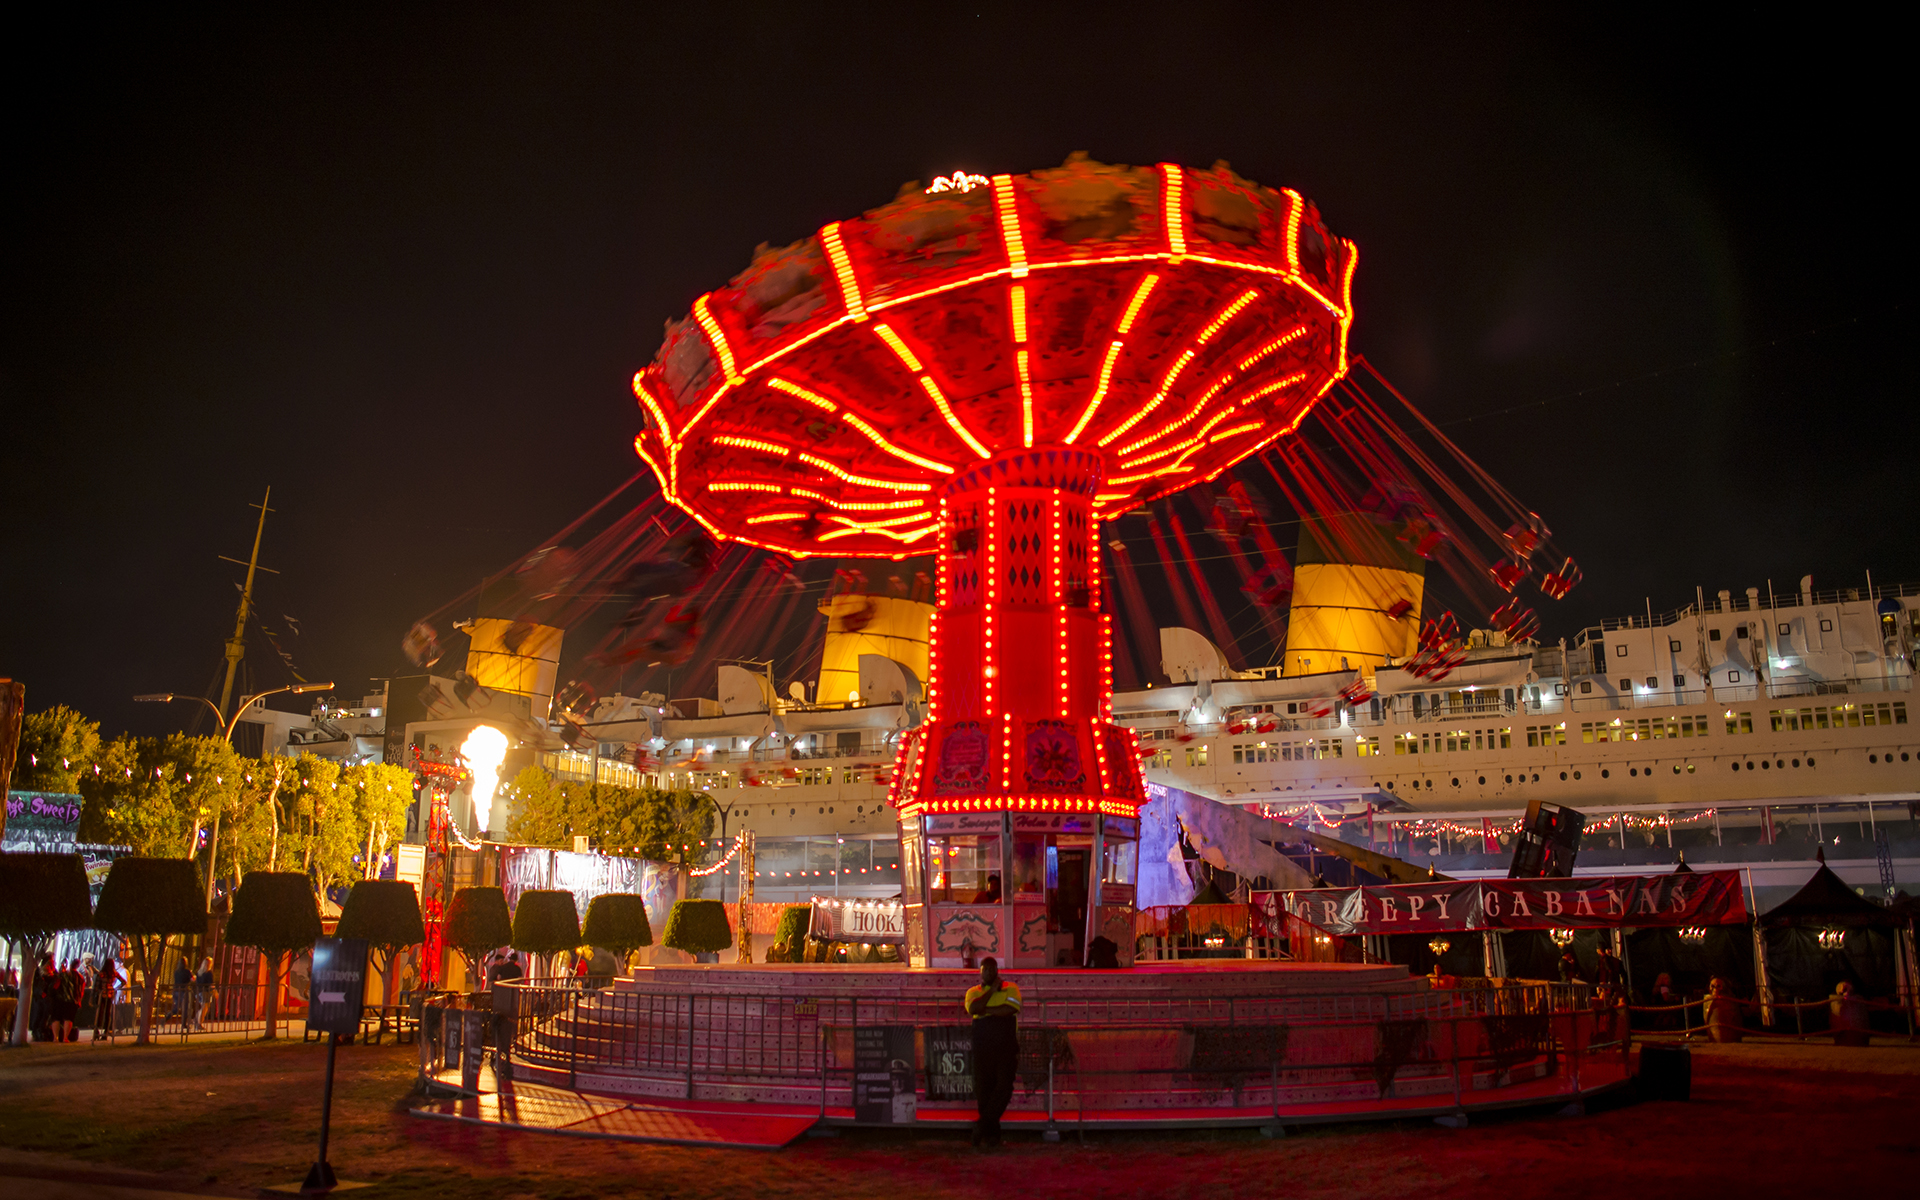 I went to the Queen Mary's Dark Harbor in early October